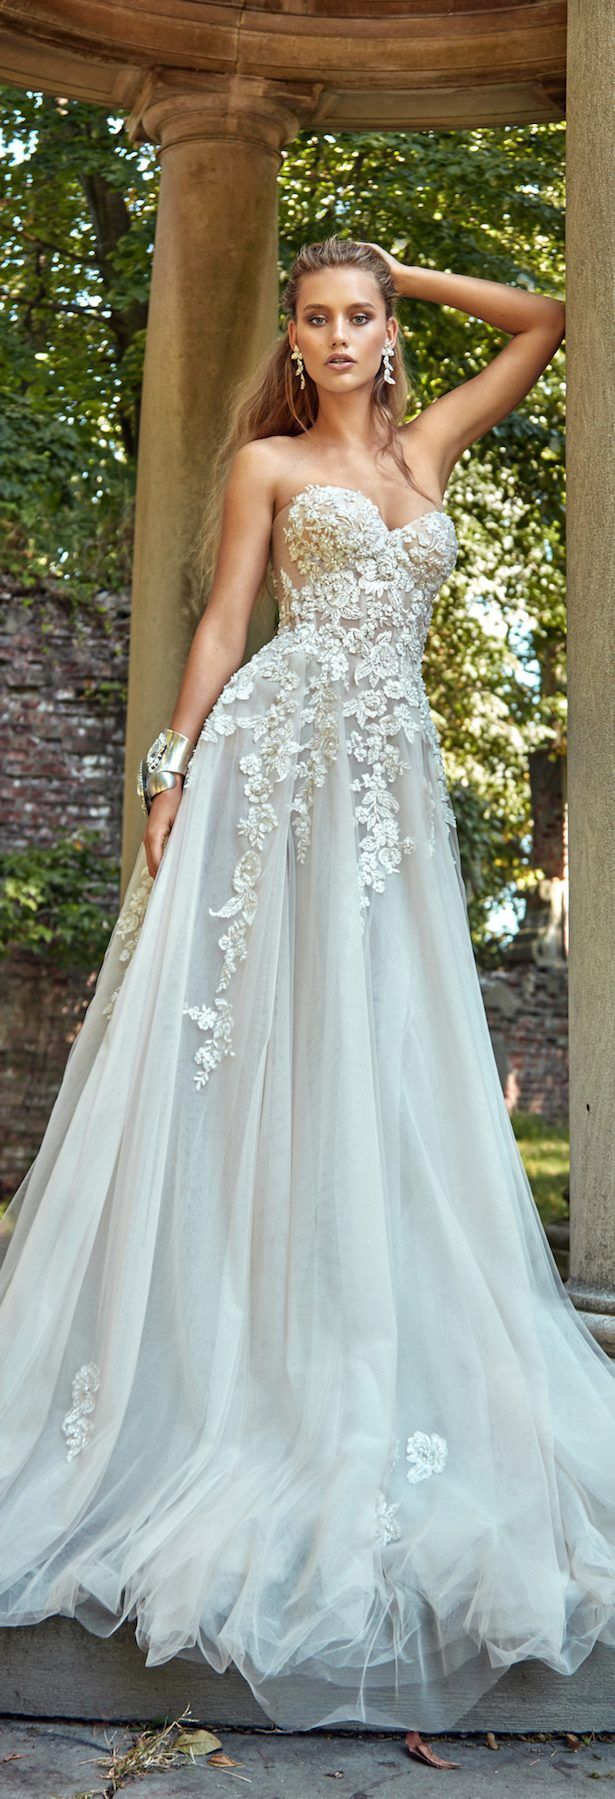 4432 best Wedding Gowns - Νυφικα - Nyfika images on Pinterest ...